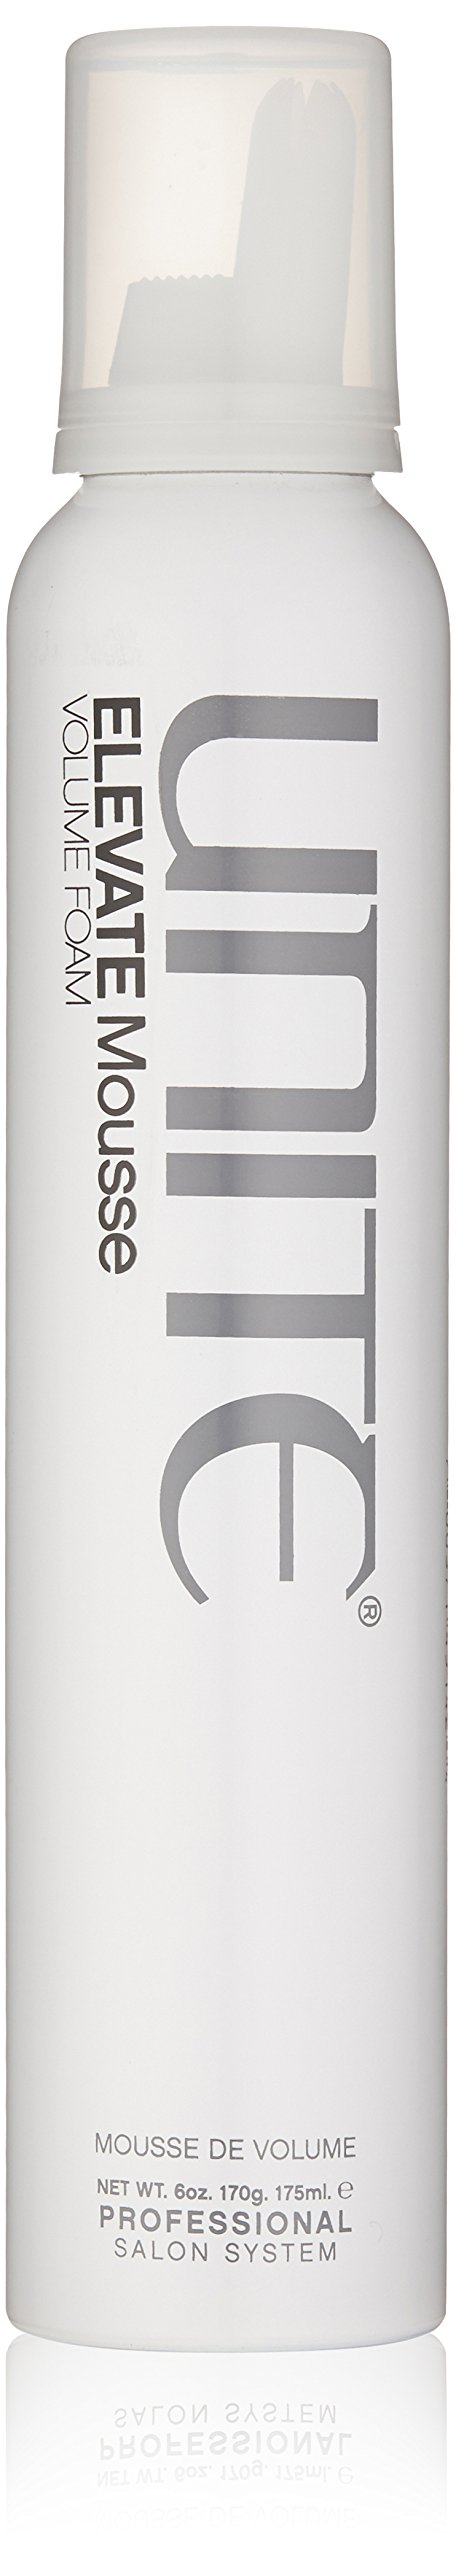 UNITE Hair Elevate Mousse, 6 Oz by UNITE Hair